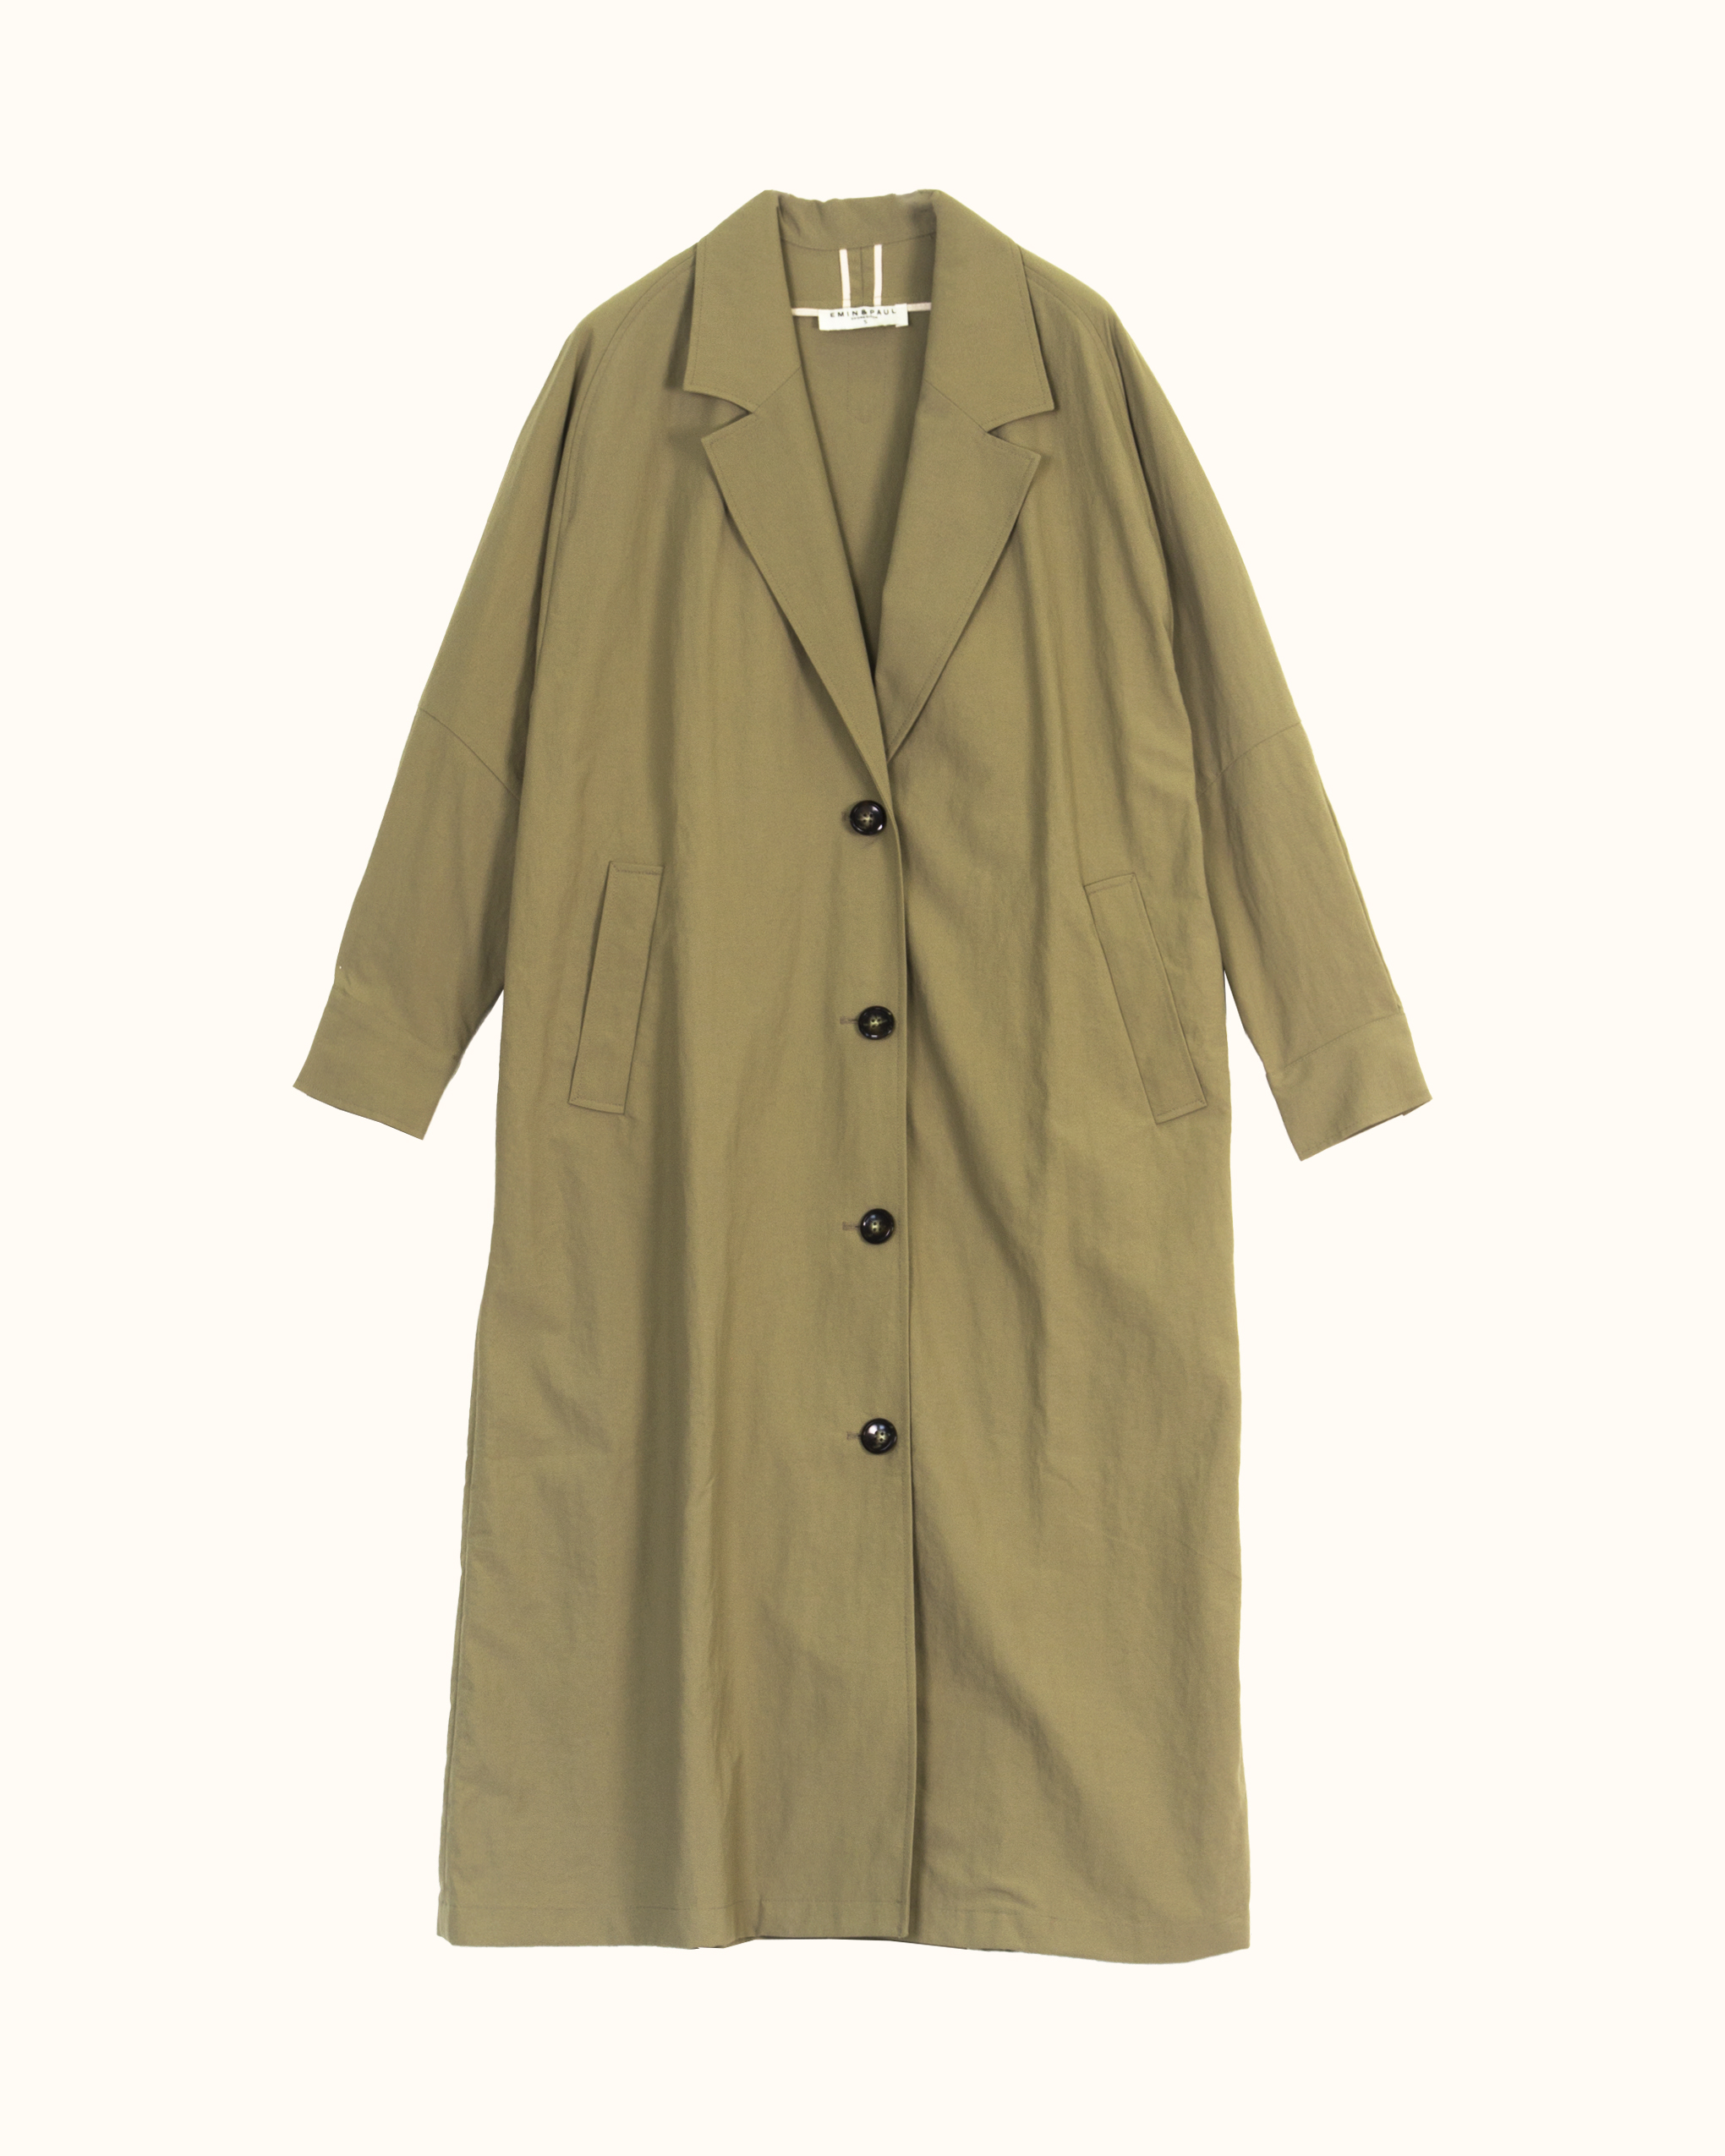 A woman is wearing Khaki volume sleeve cotton blend trench coat.